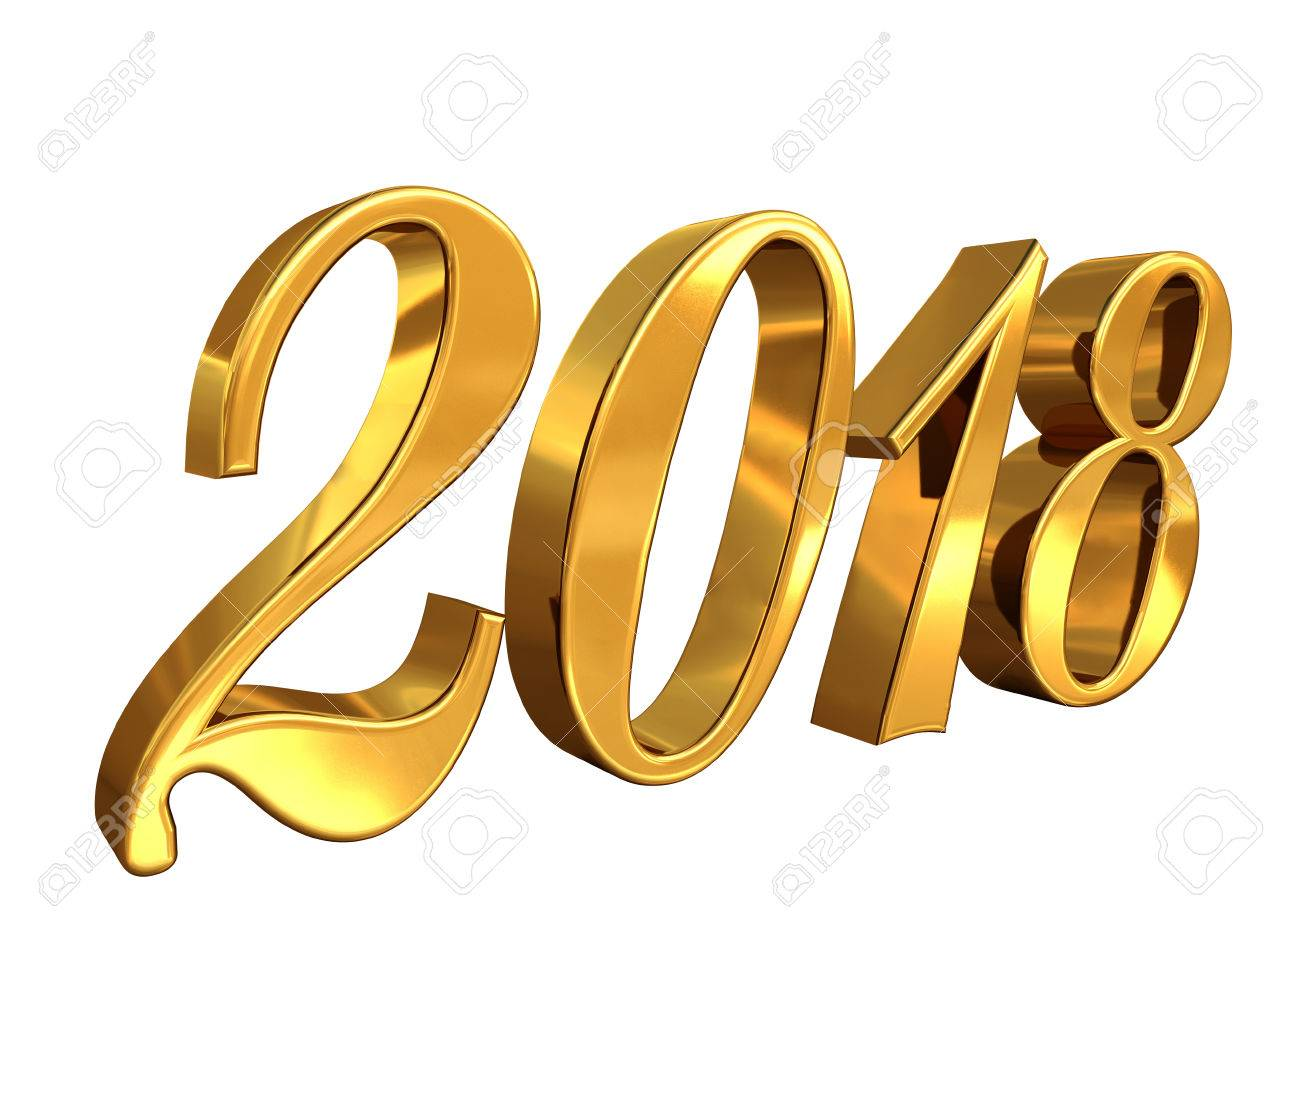 Gold 2018 Celebration Number, Golden 3D Numbers on a White Background, 2018 Happy New Year or Christmas Background Creative Greeting Card Design, for Flyers, Invitation, Posters, Brochure, Banners - 80371754